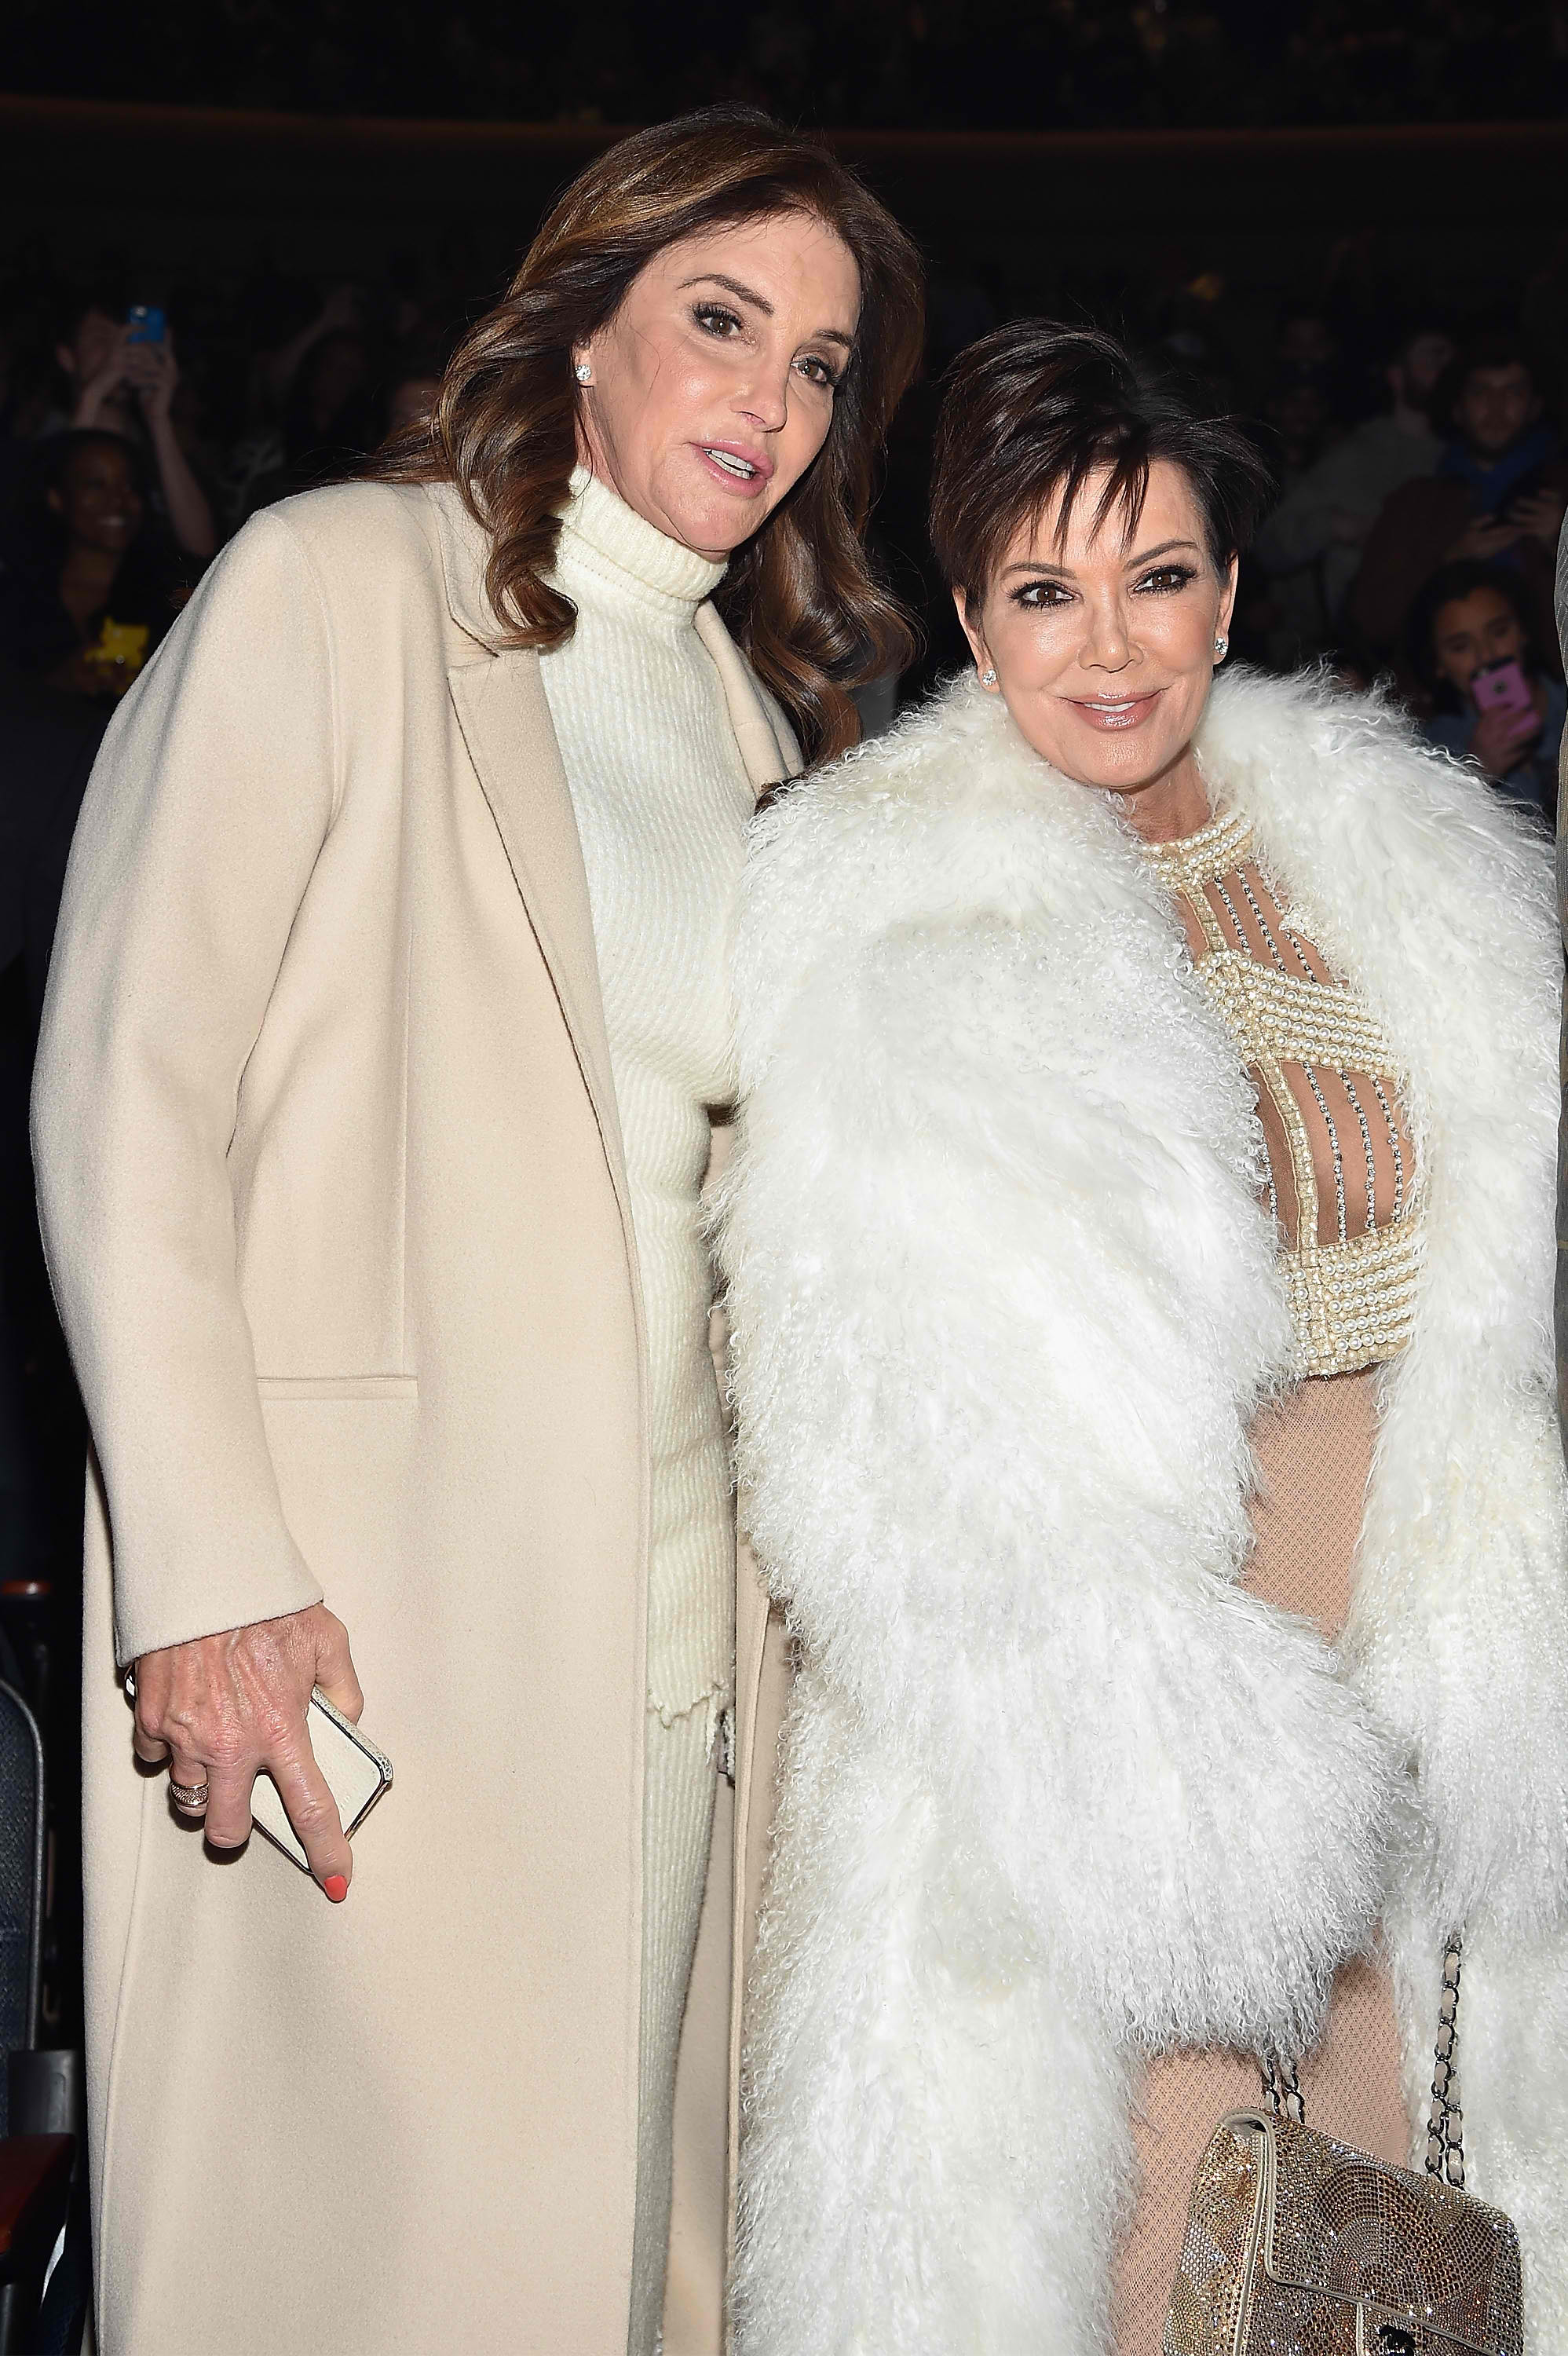 Kris Jenner Was 150 Percent In Love With Ex Caitlyn Jenner